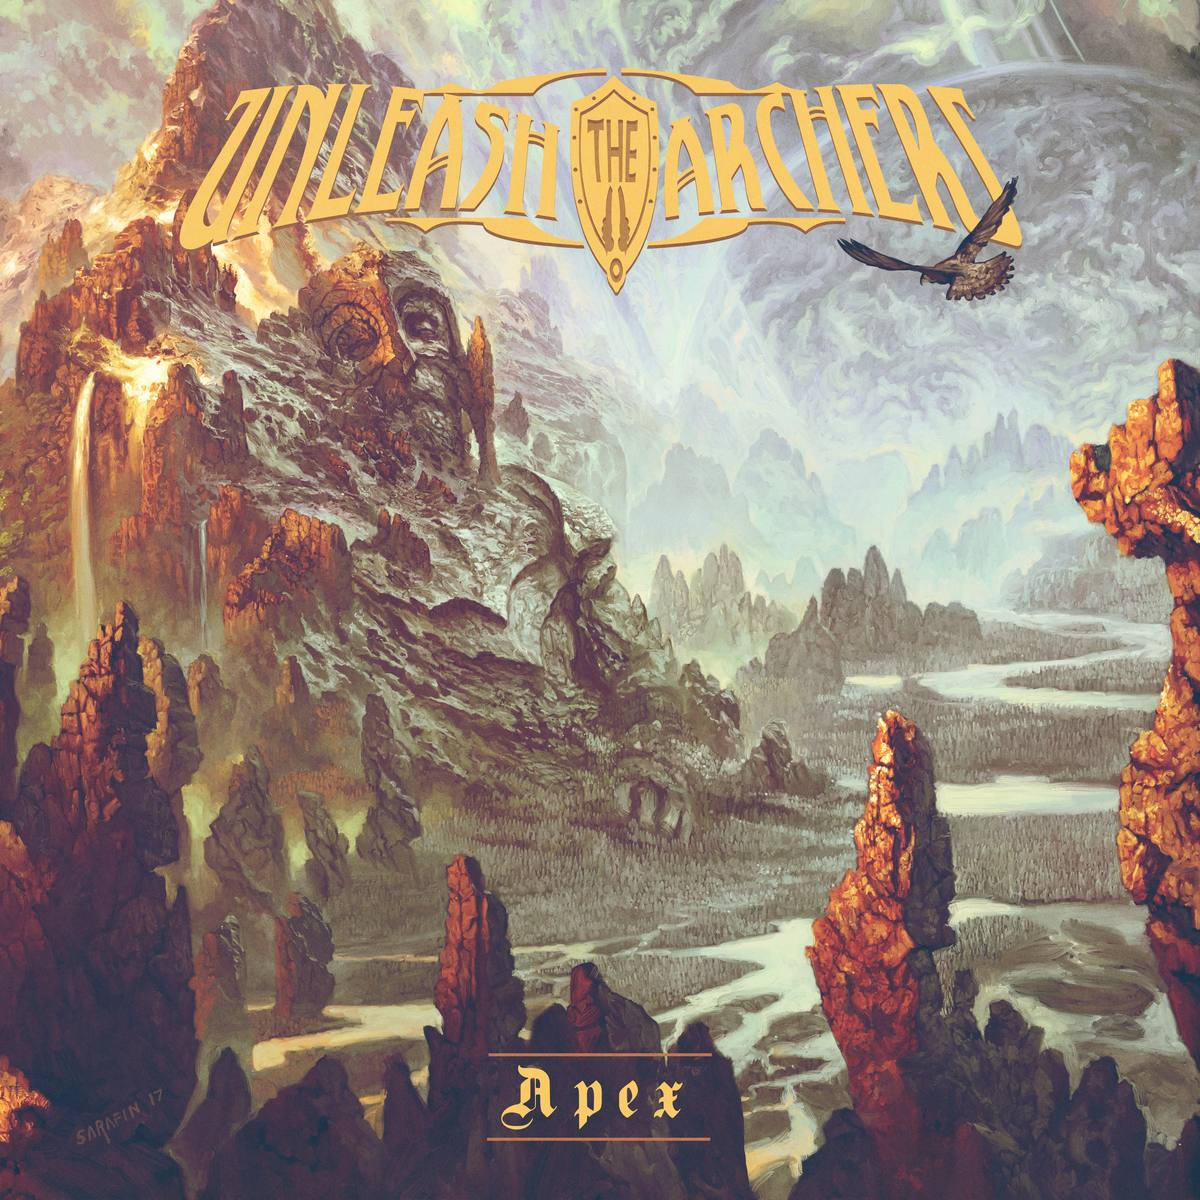 Unleash the Archers – Apex (2017)